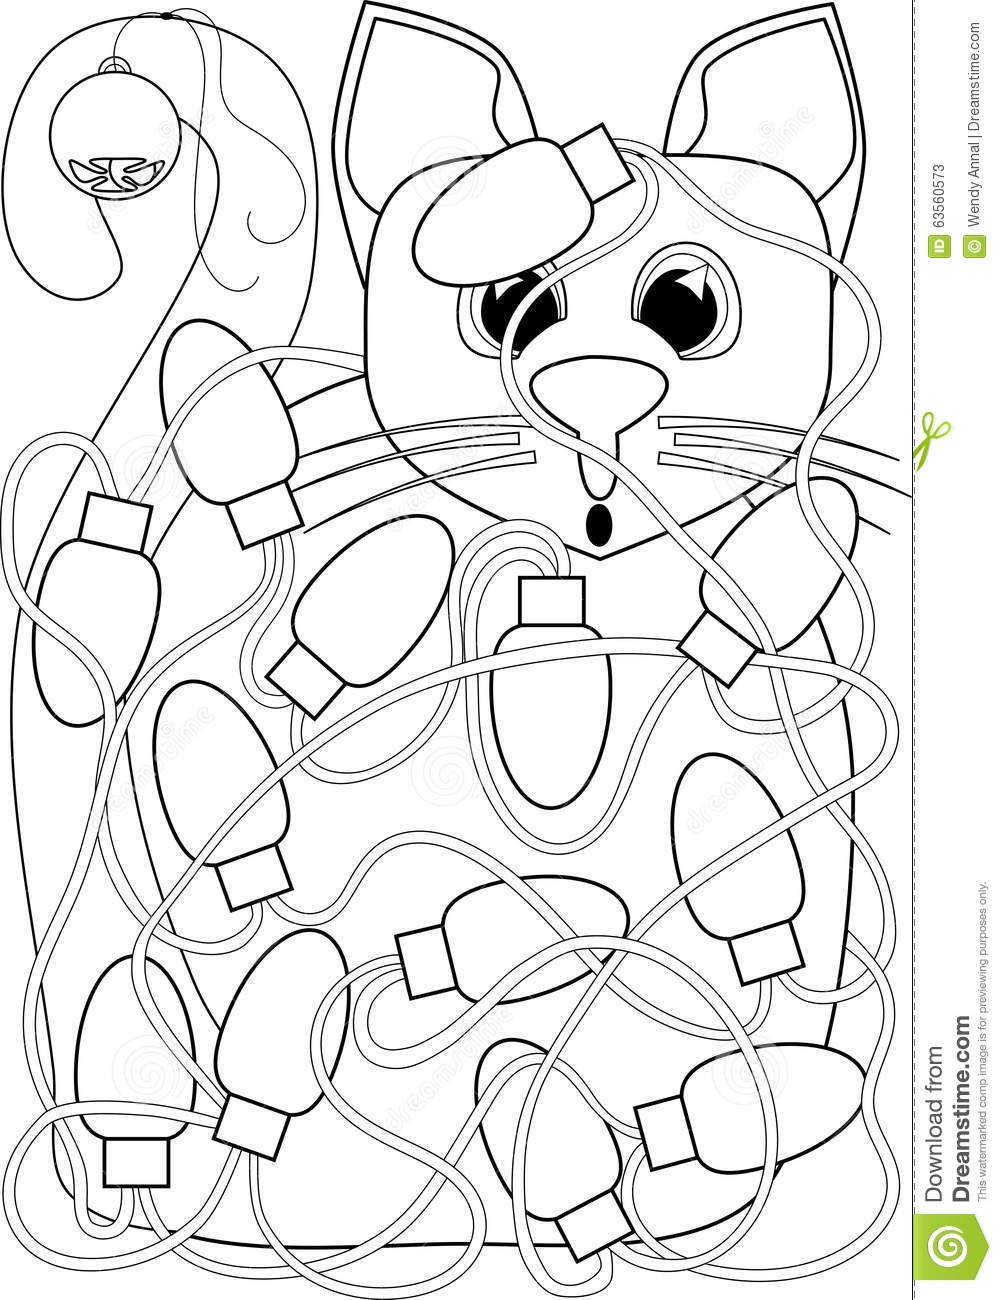 Christmas Lights Coloring Pages With Cat Tangled In Page Stock Illustration